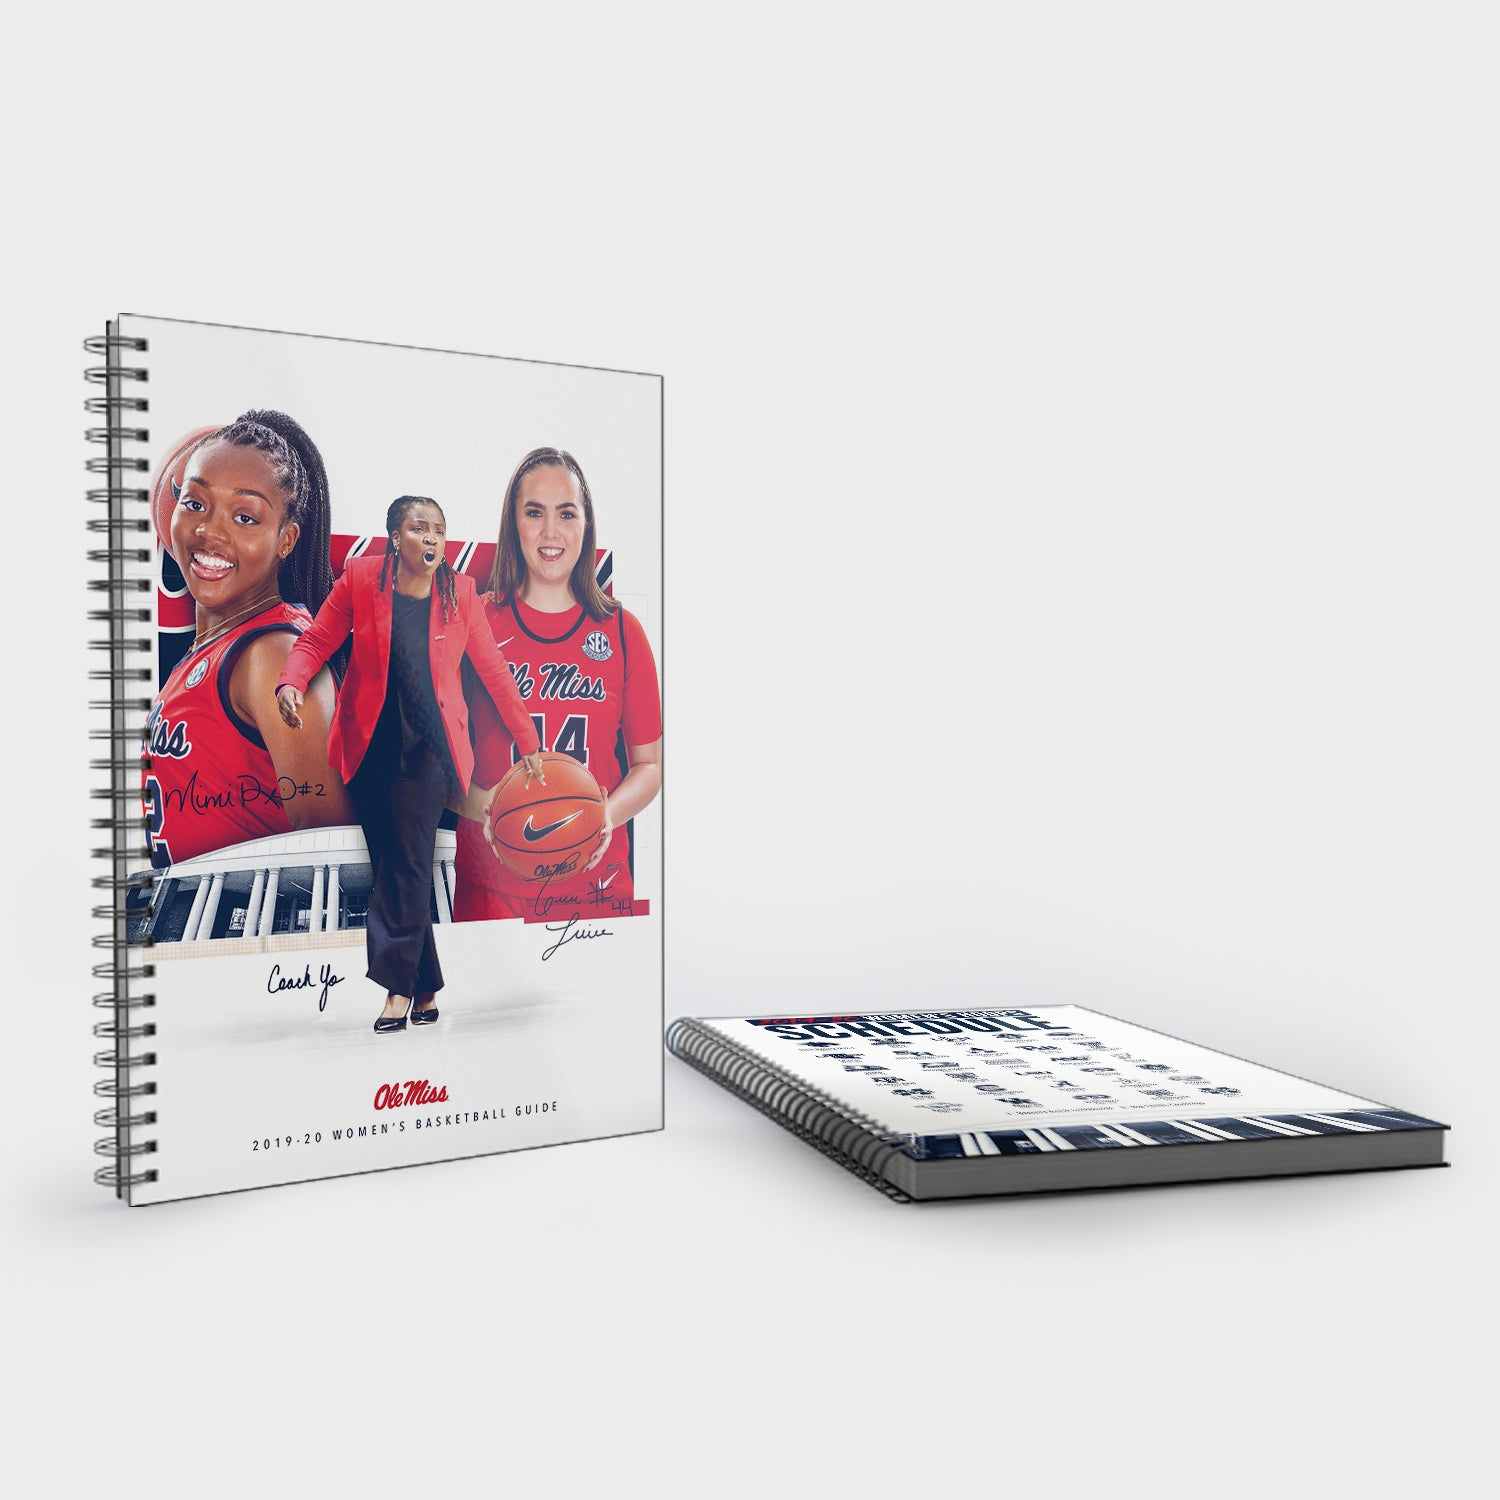 Ole Miss Rebels - 2019 Women's Basketball Media Guide